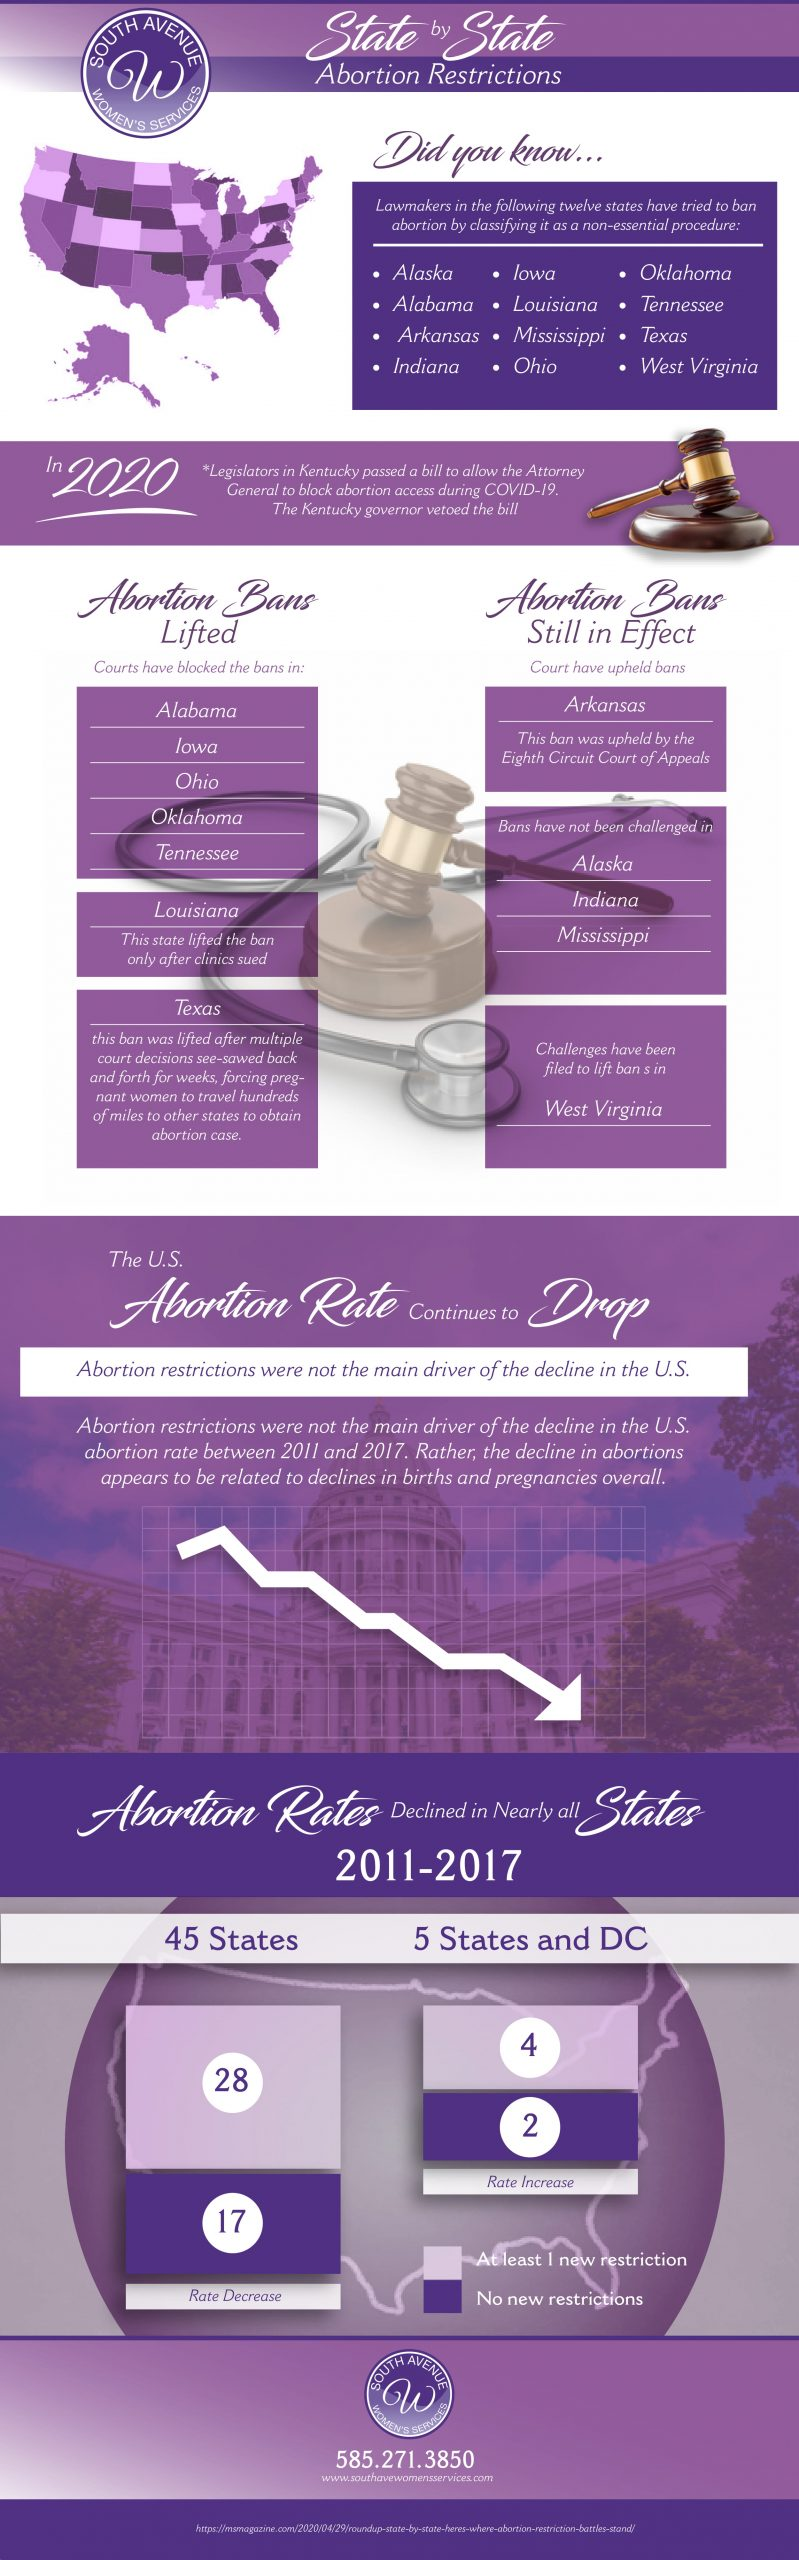 Abortion Services in Rochester, NY